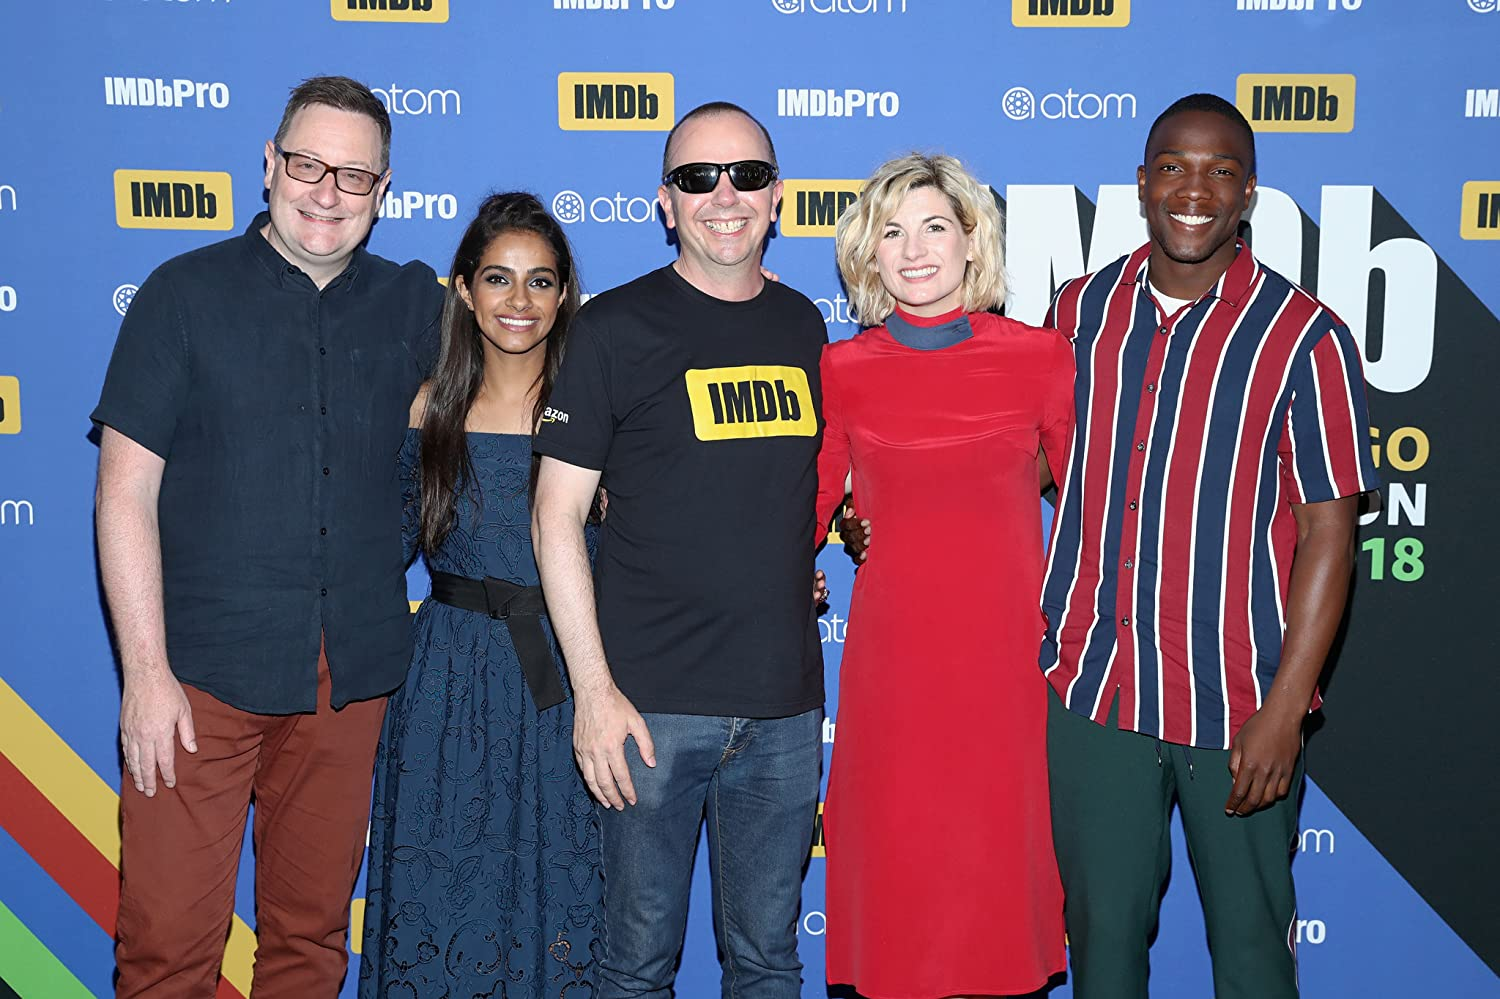 Col Needham Chris Chibnall Jodie Whittaker Tosin Cole and Mandip Gill at an event for Doctor Who 2005